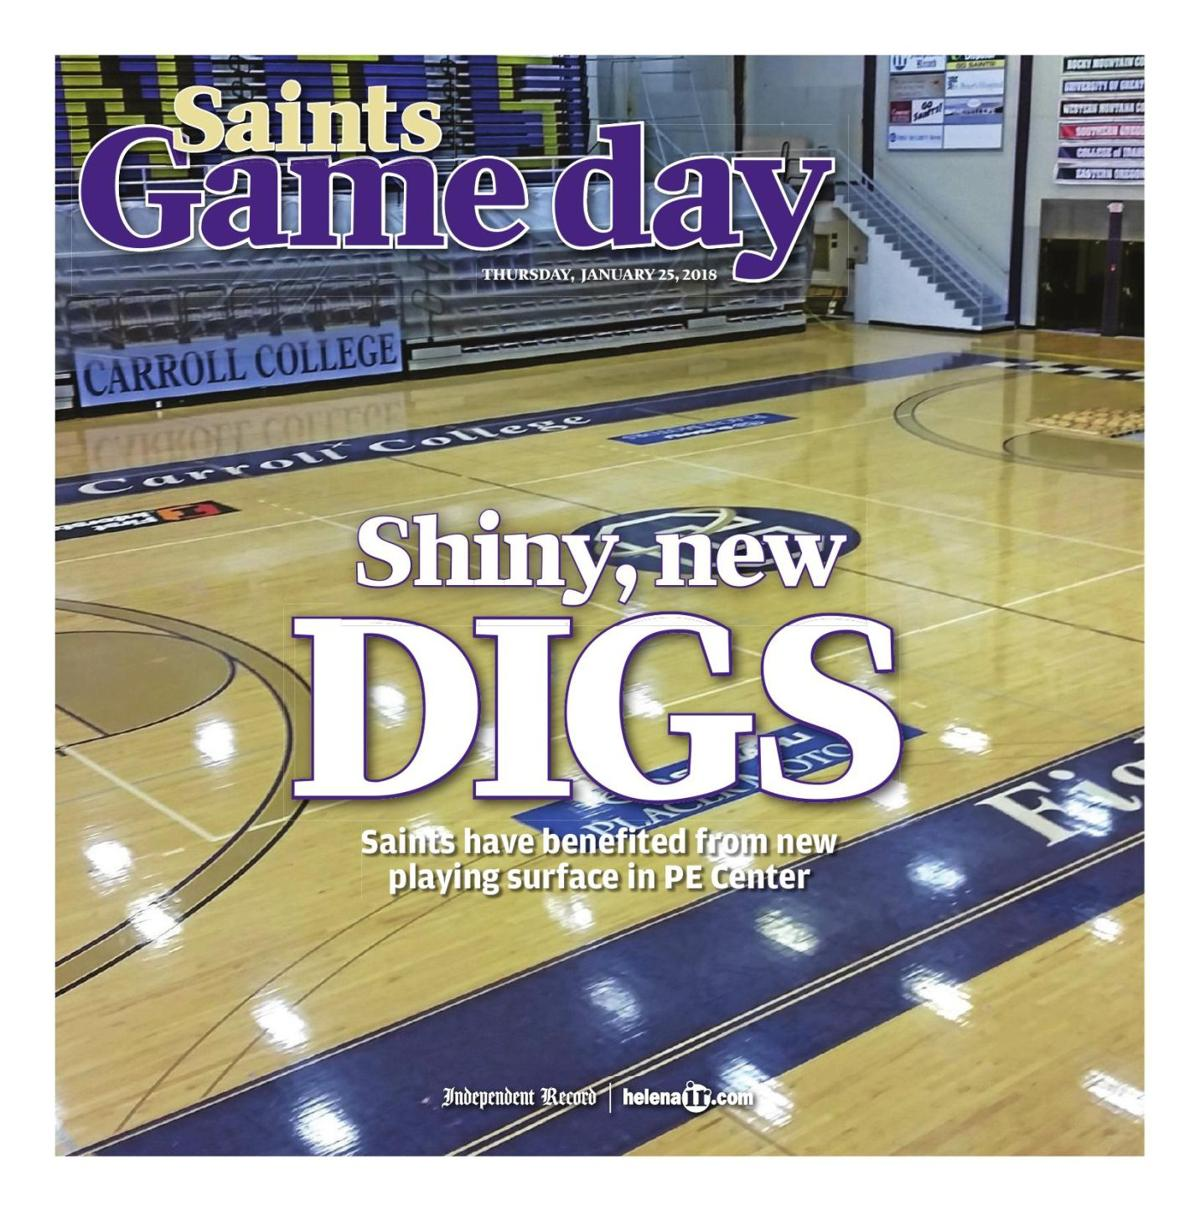 Carroll College Saints Game Day - January 25, 2018